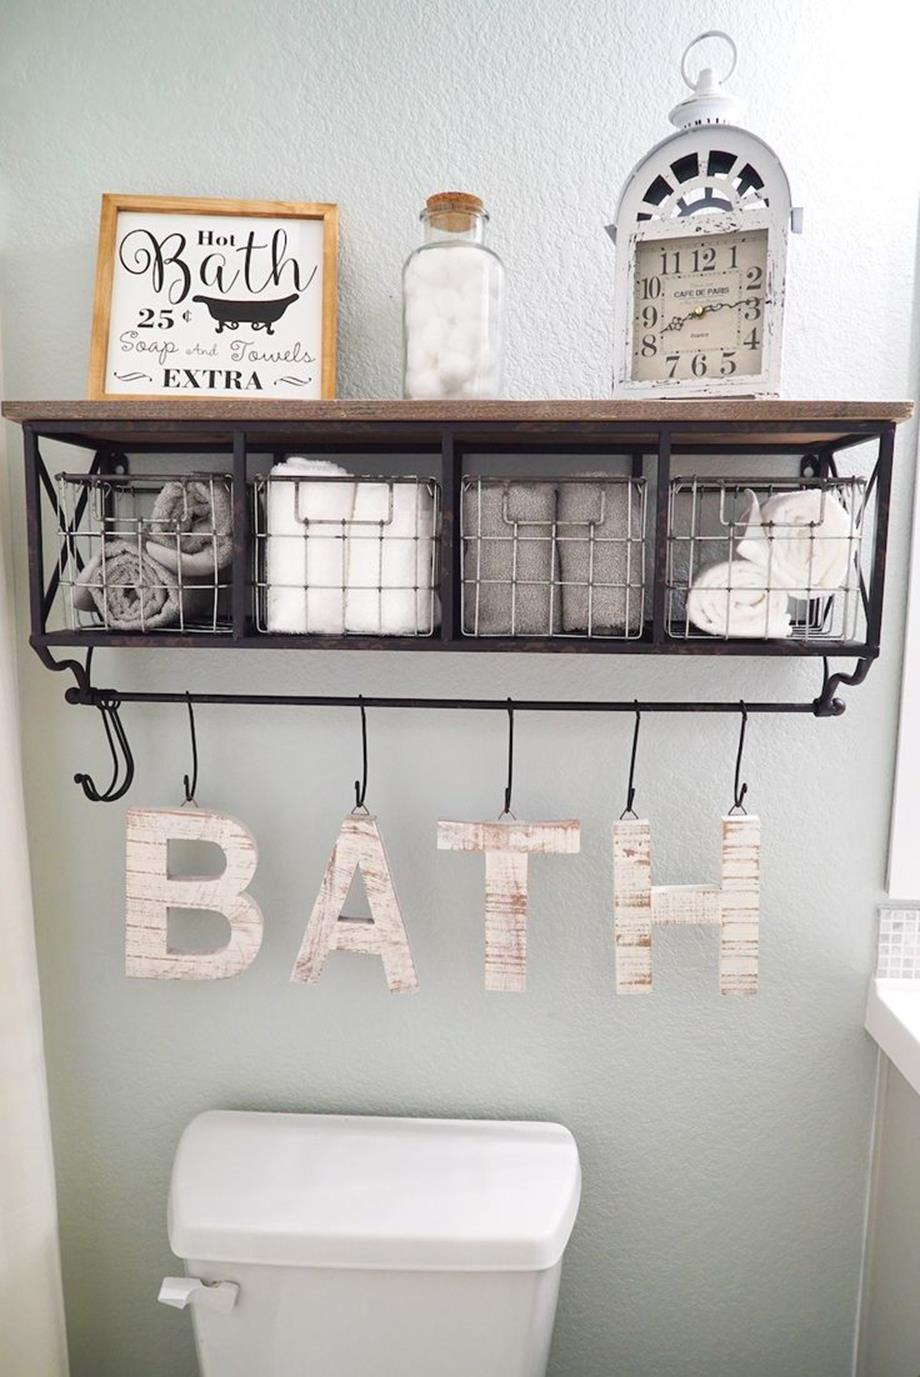 Wall Decor Ideas for Bathrooms Best Of 43 Simple but Beautiful Bathroom Wall Art and Decor